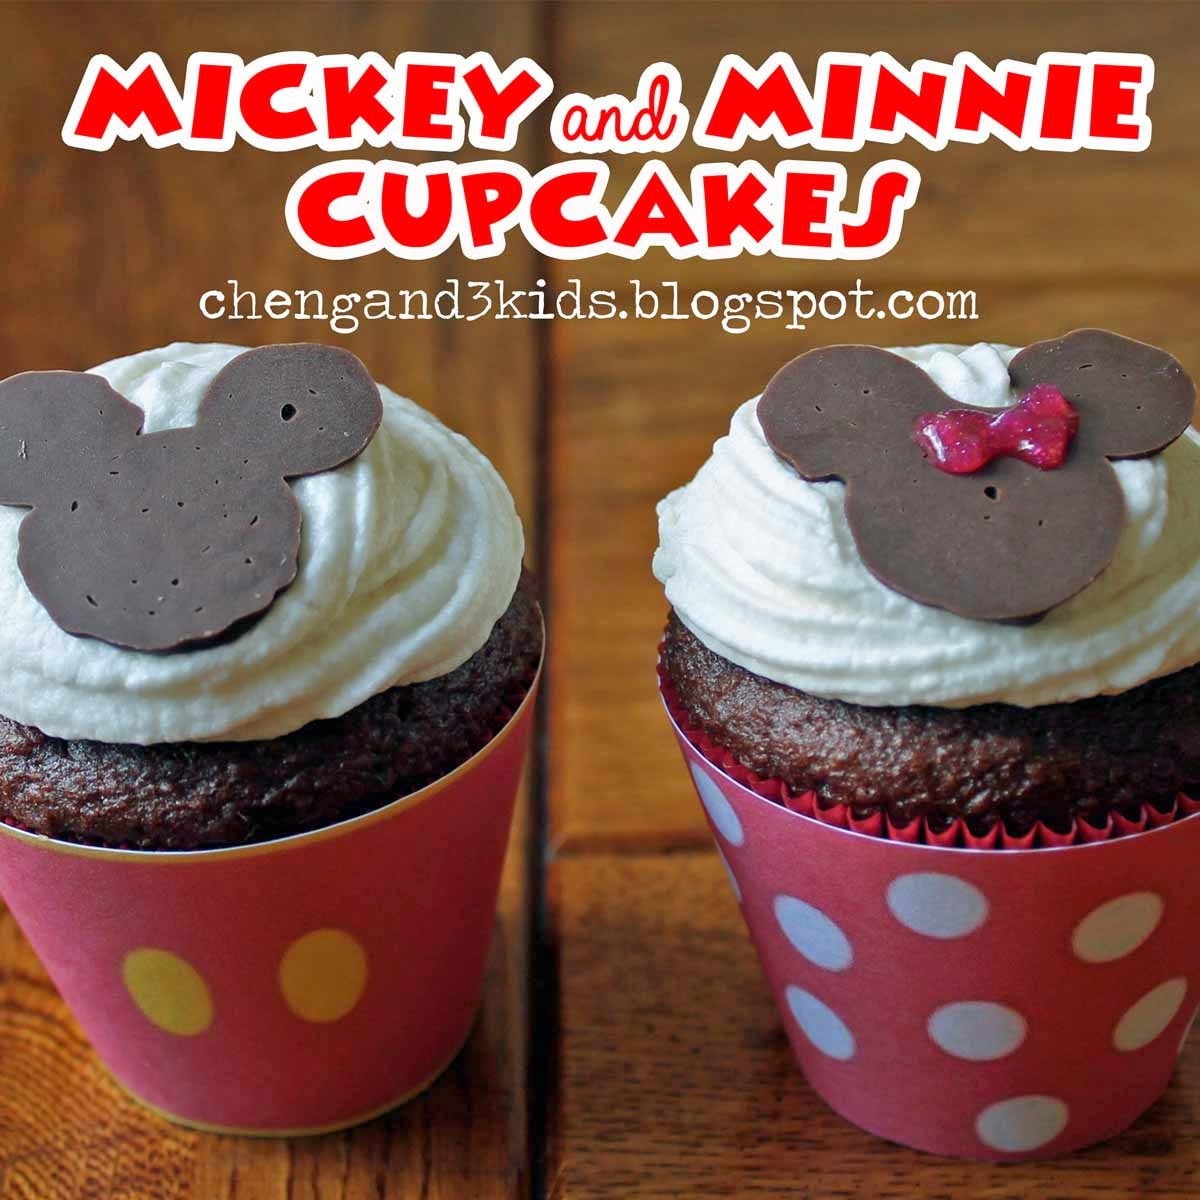 Mickey and Minnie Cupcakes by Cheng and 3 Kids